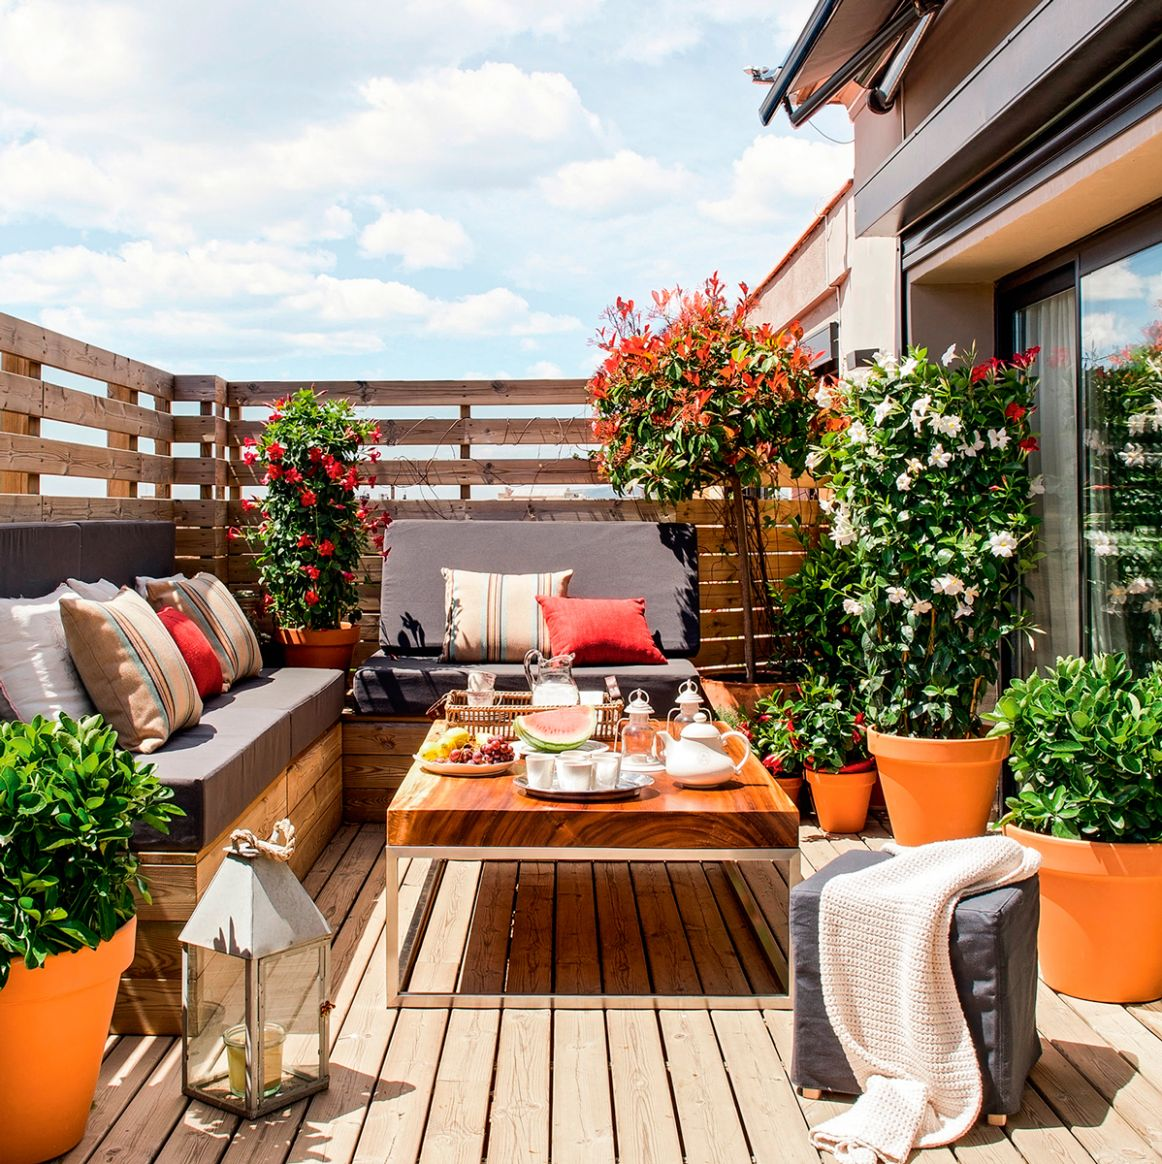 9 Small Balcony Ideas That Will Make You Fall in Love | Virginia ...